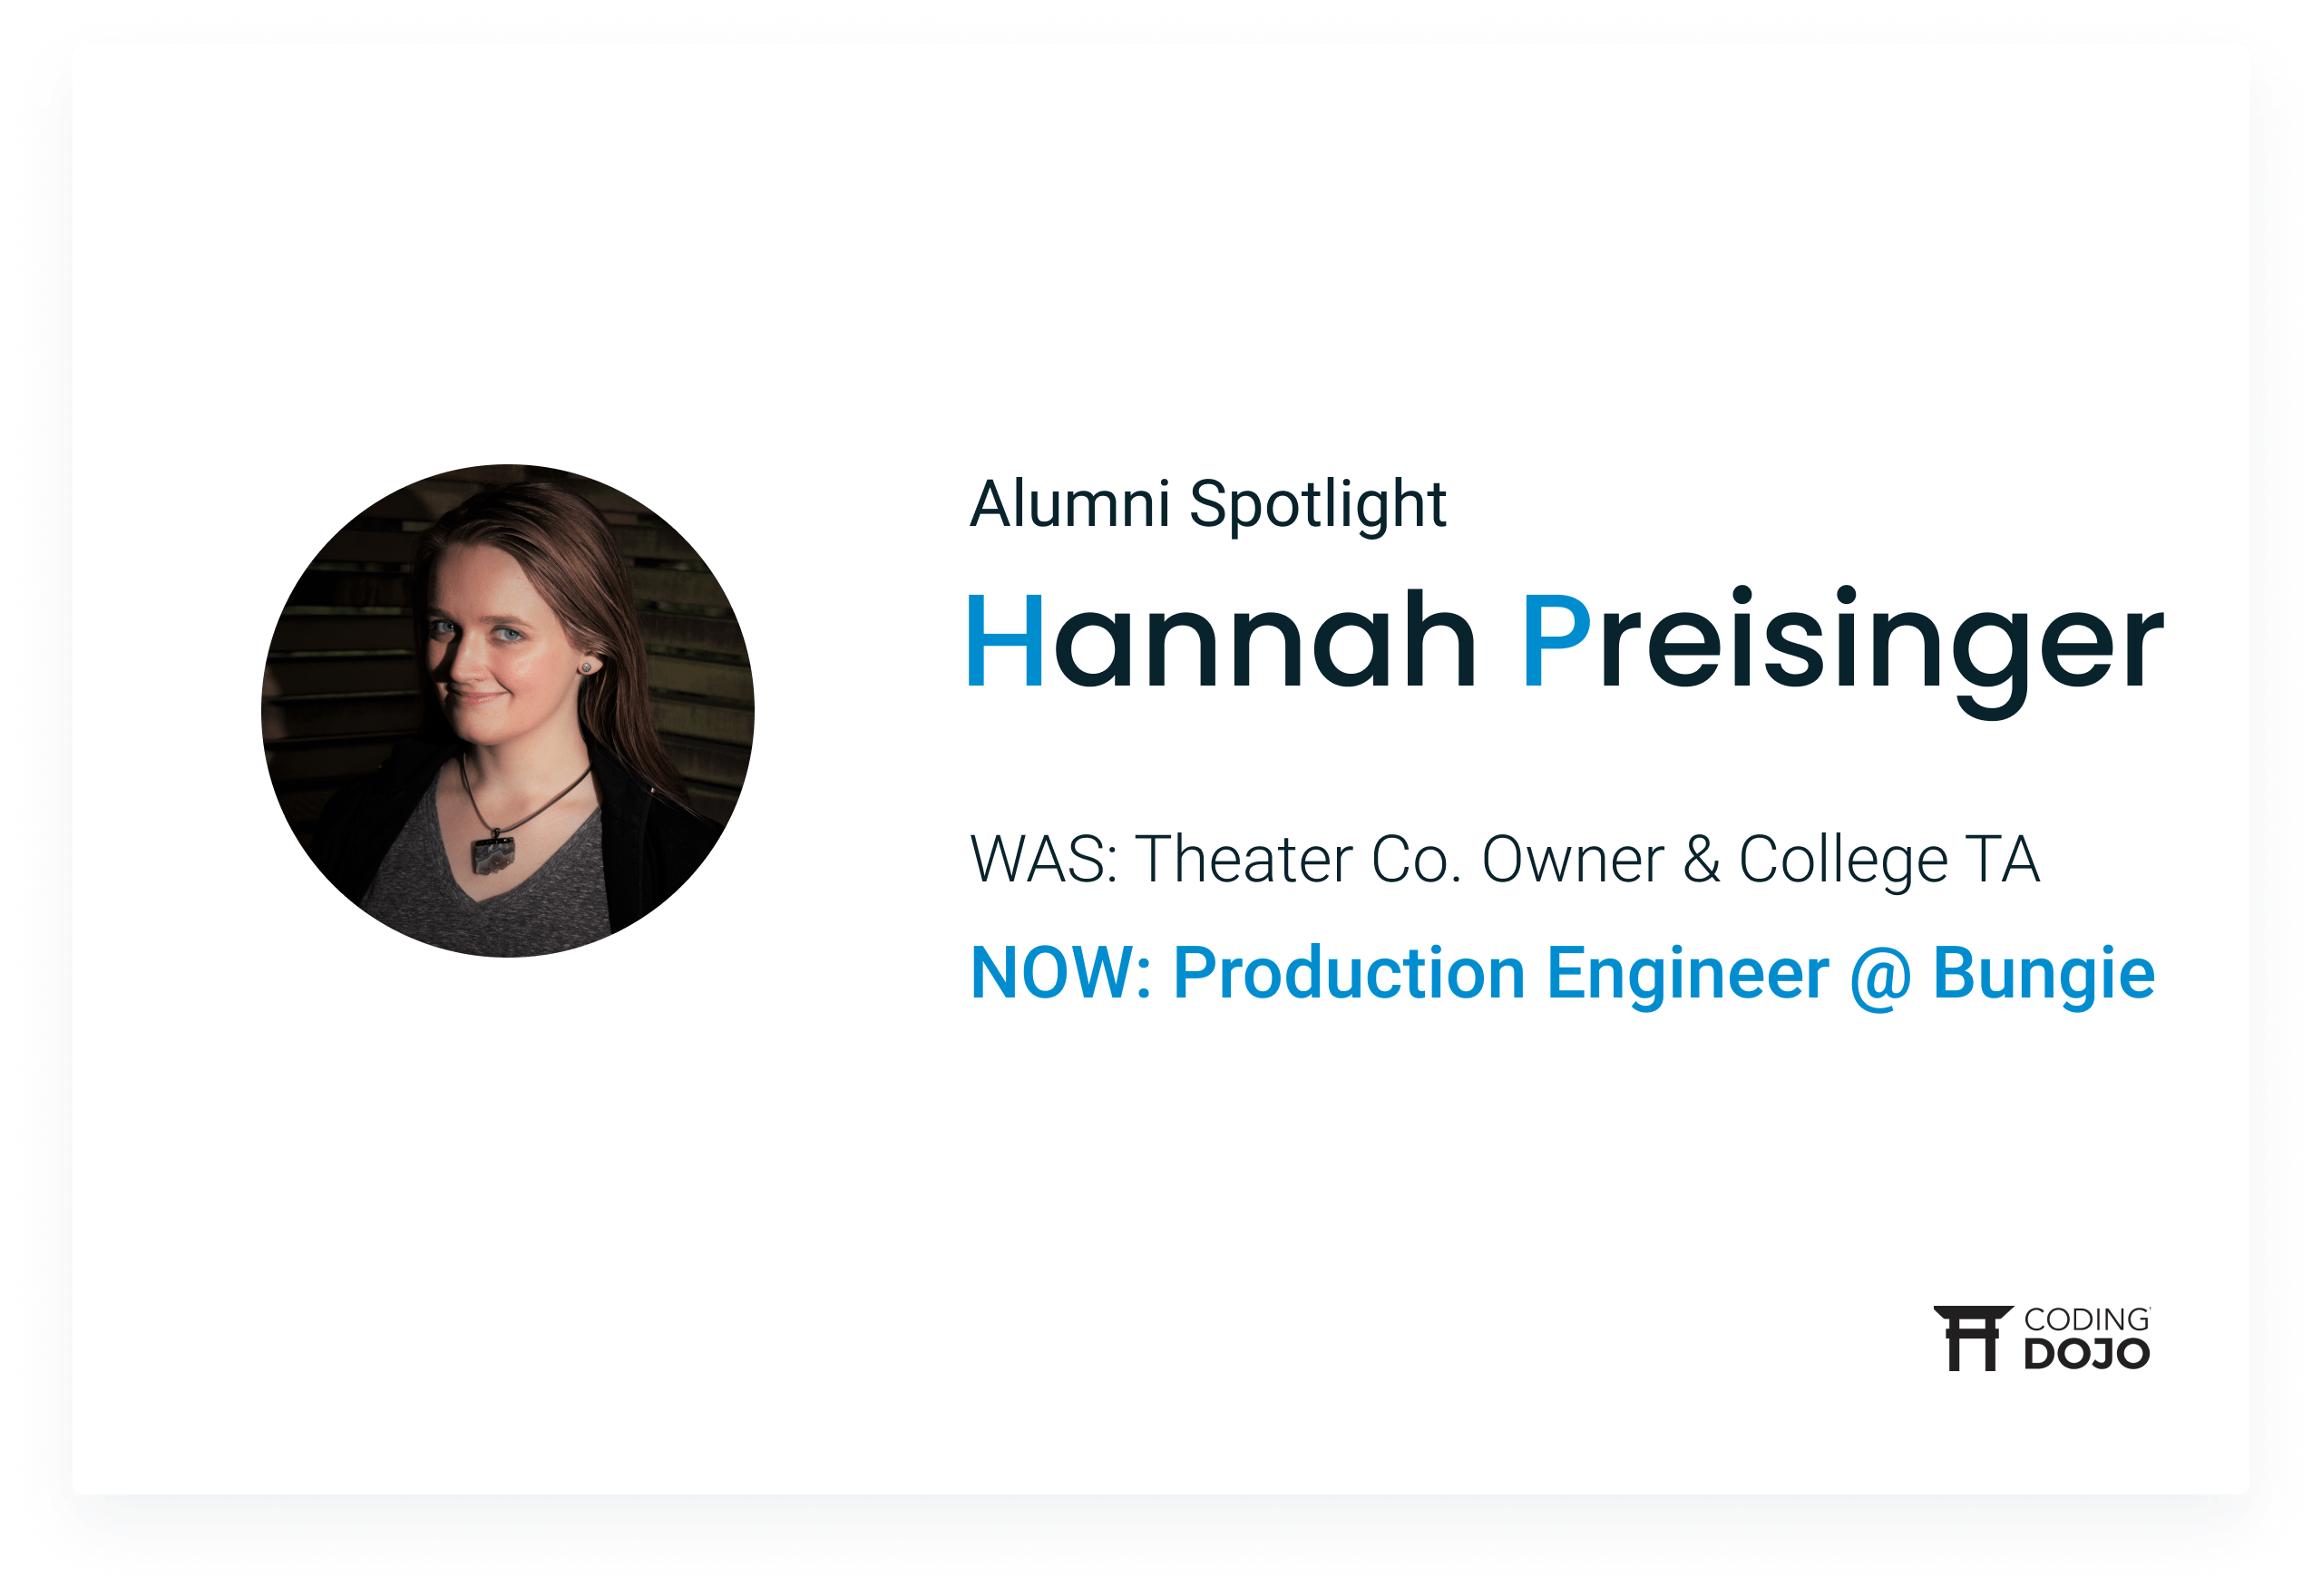 From Theater Production to Production Engineer at Bungie | How Bellevue Graduate Hannah Preisinger Landed Her Dream Job